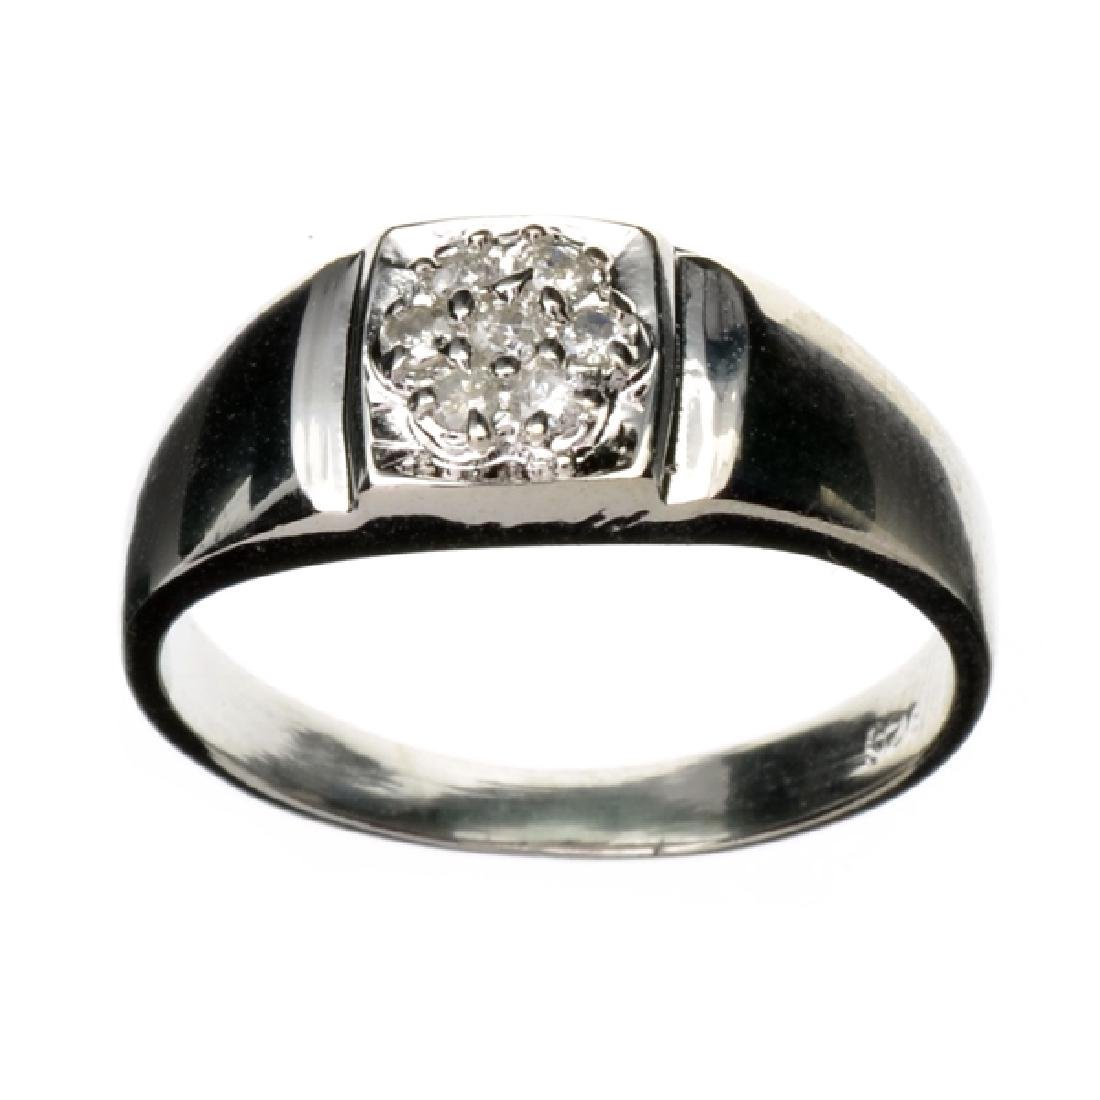 APP: 1.1k 0.20CT Round Cut Diamond and Platinum Over